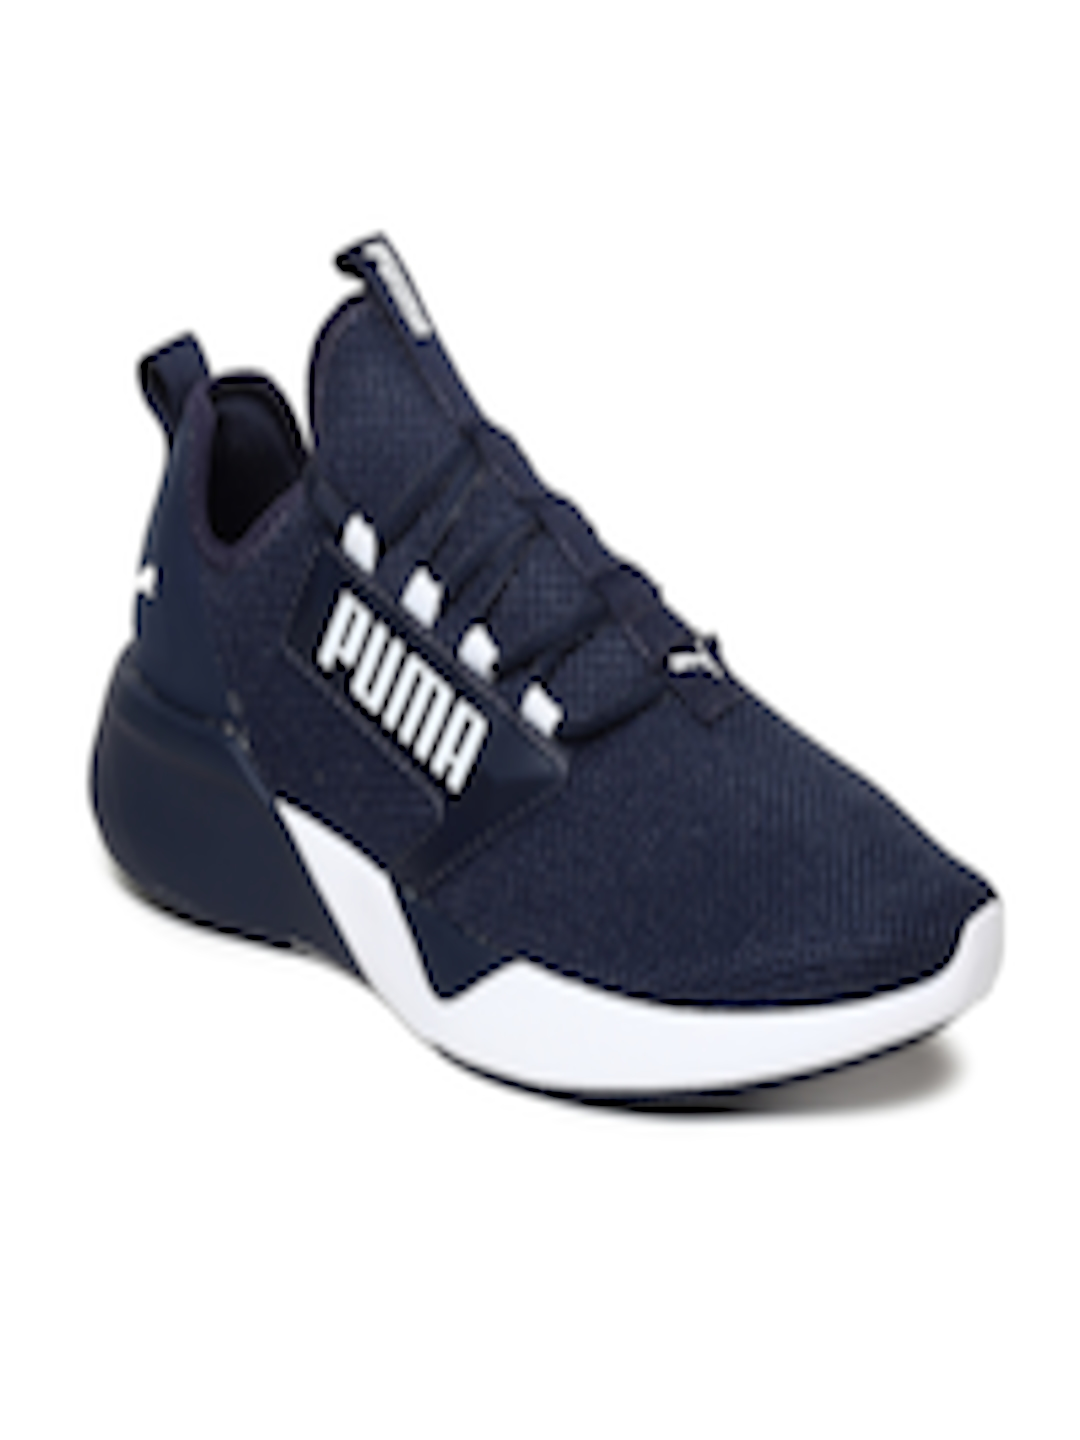 21a6c62a5 Buy Puma Men Navy Blue Retaliate Training Shoes - Sports Shoes for Men  8476981 | Myntra